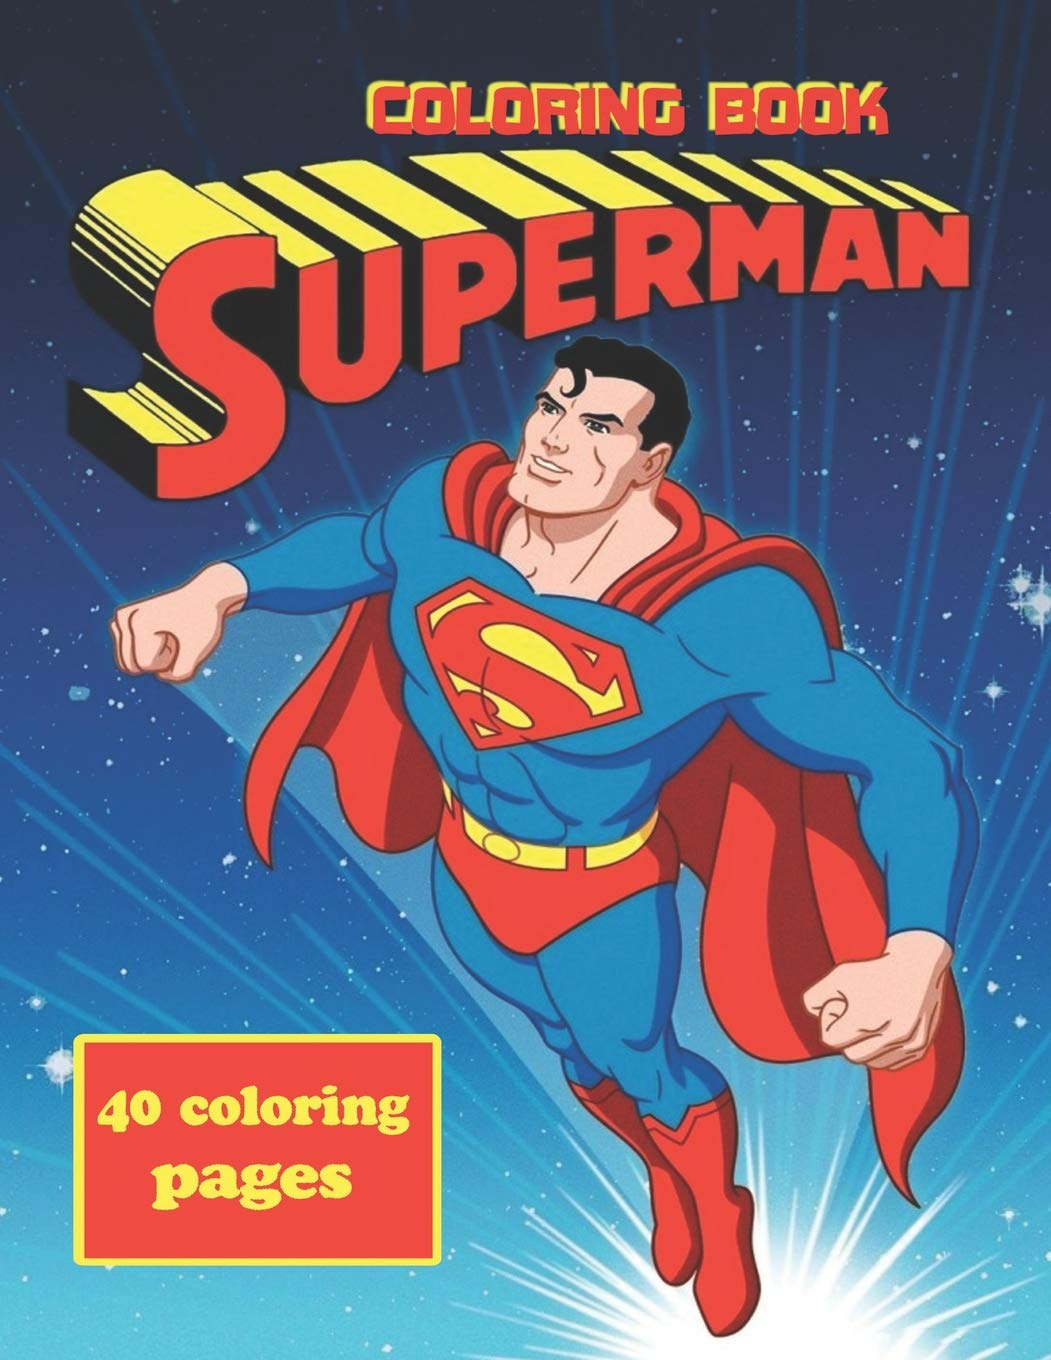 Amazon.com: Superman Coloring Book: Coloring Book for Kids ...